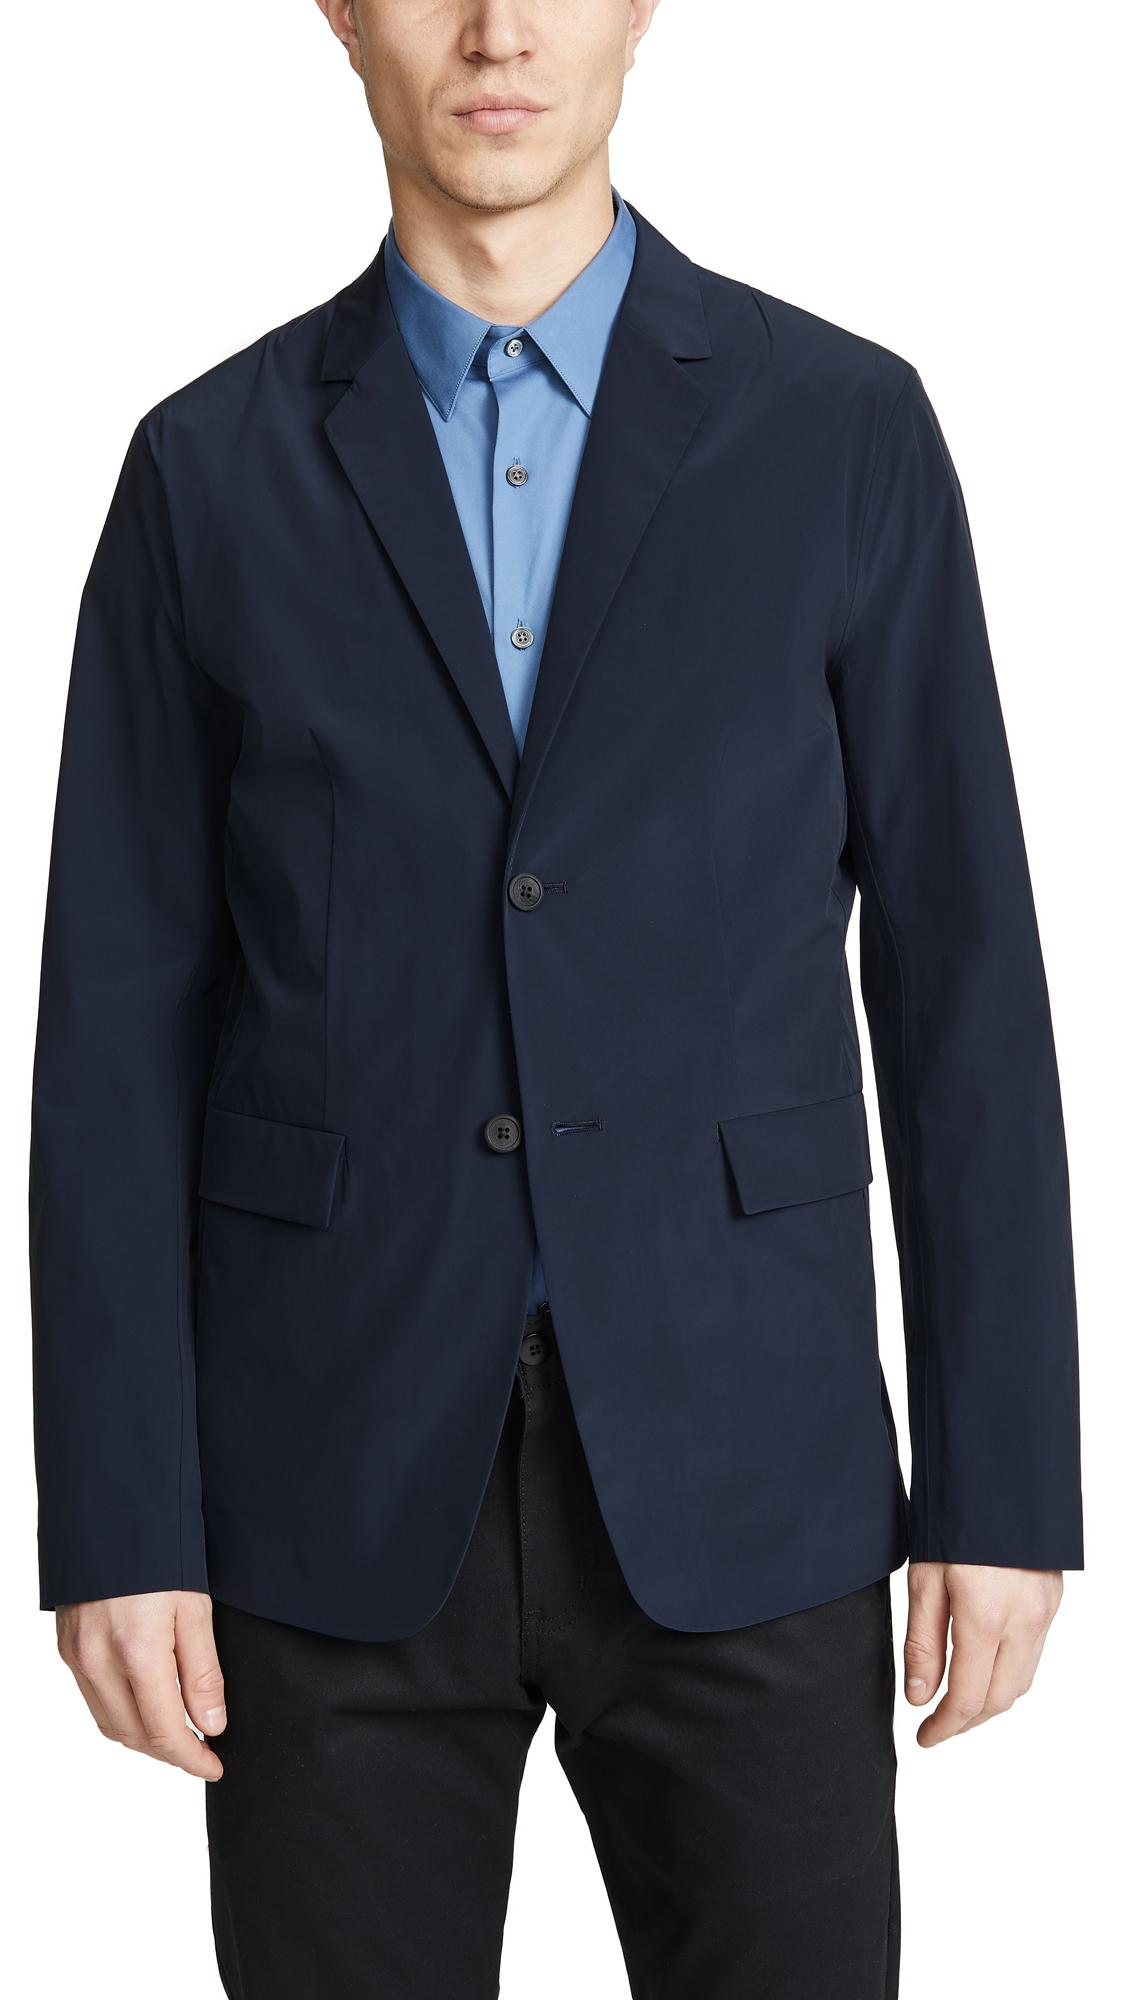 Theory Blazer For Men Blue In Packable Euclid Lyst waAZH